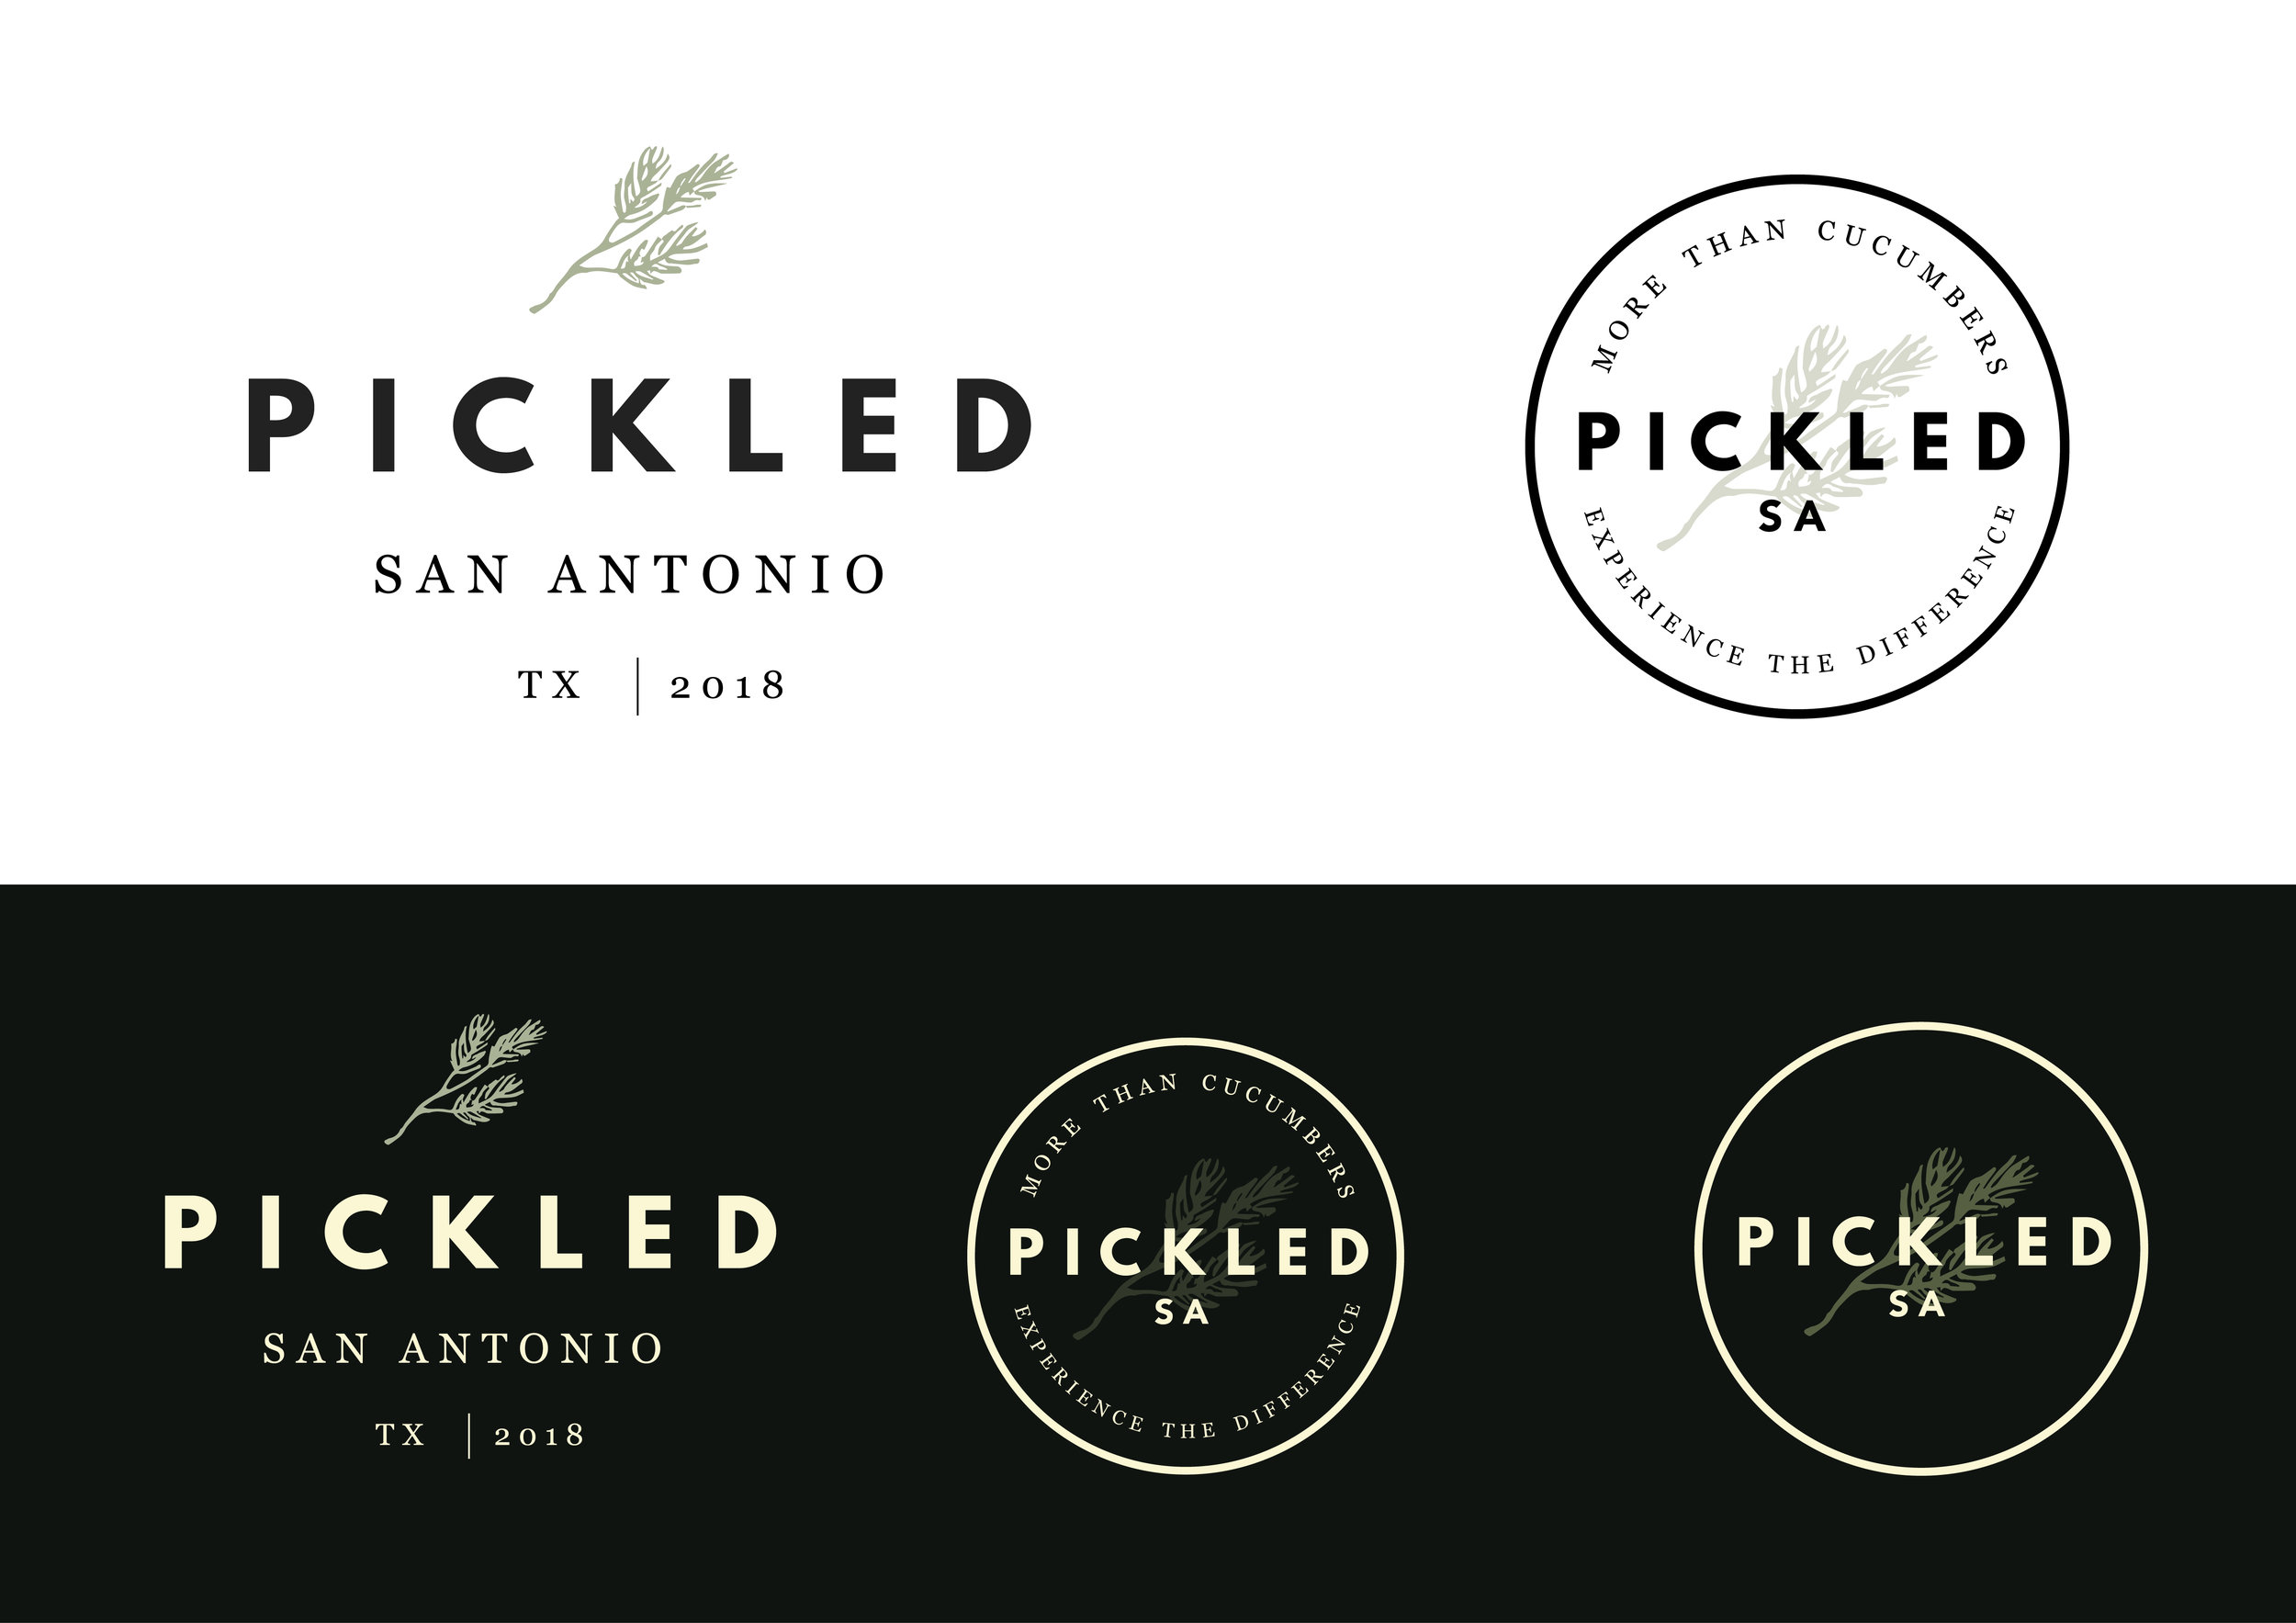 Pickled_Branding_portfolio-01.jpg